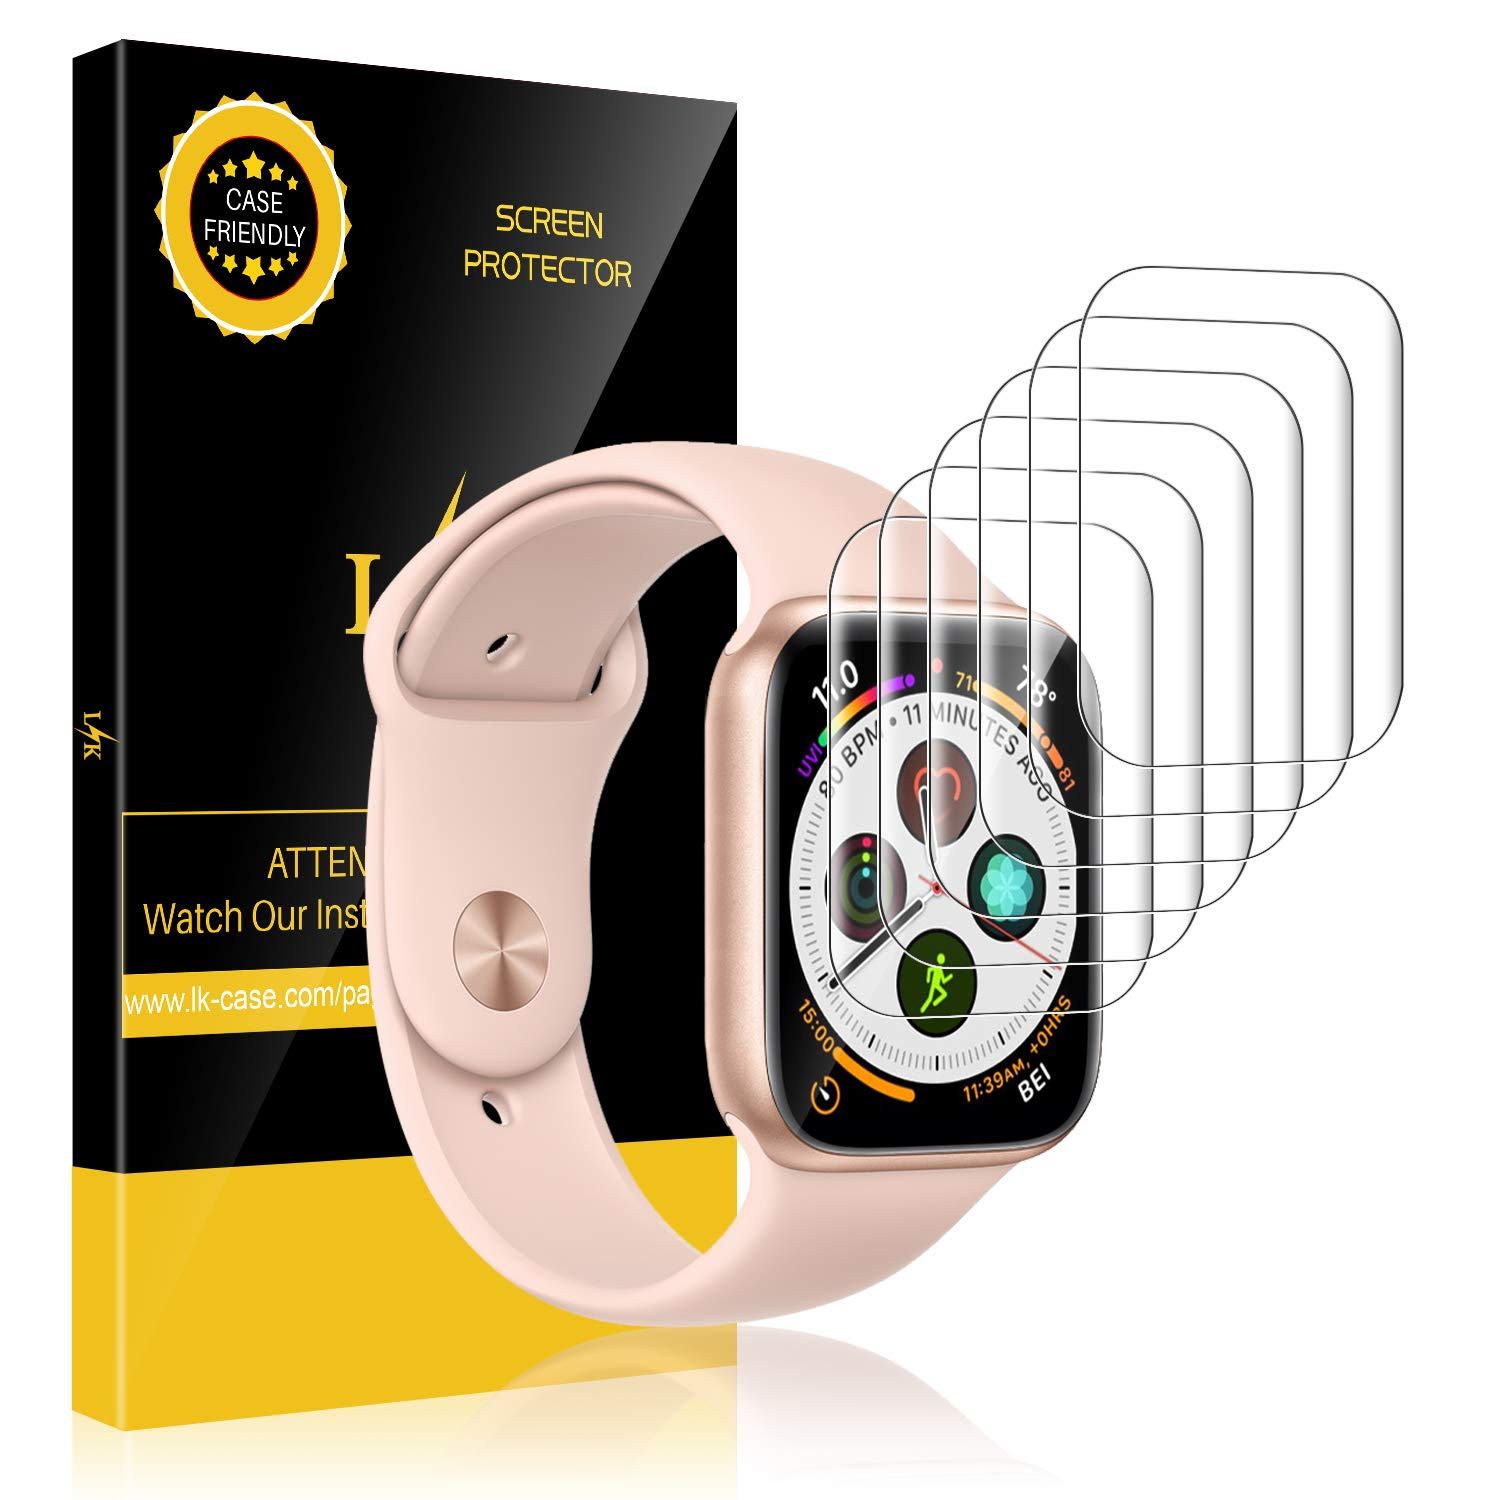 LK [6 Pack] Screen Protector for Apple Watch Series 4 44mm, [HD Clear Anti-Bubble] with Lifetime Replacement Warranty product image